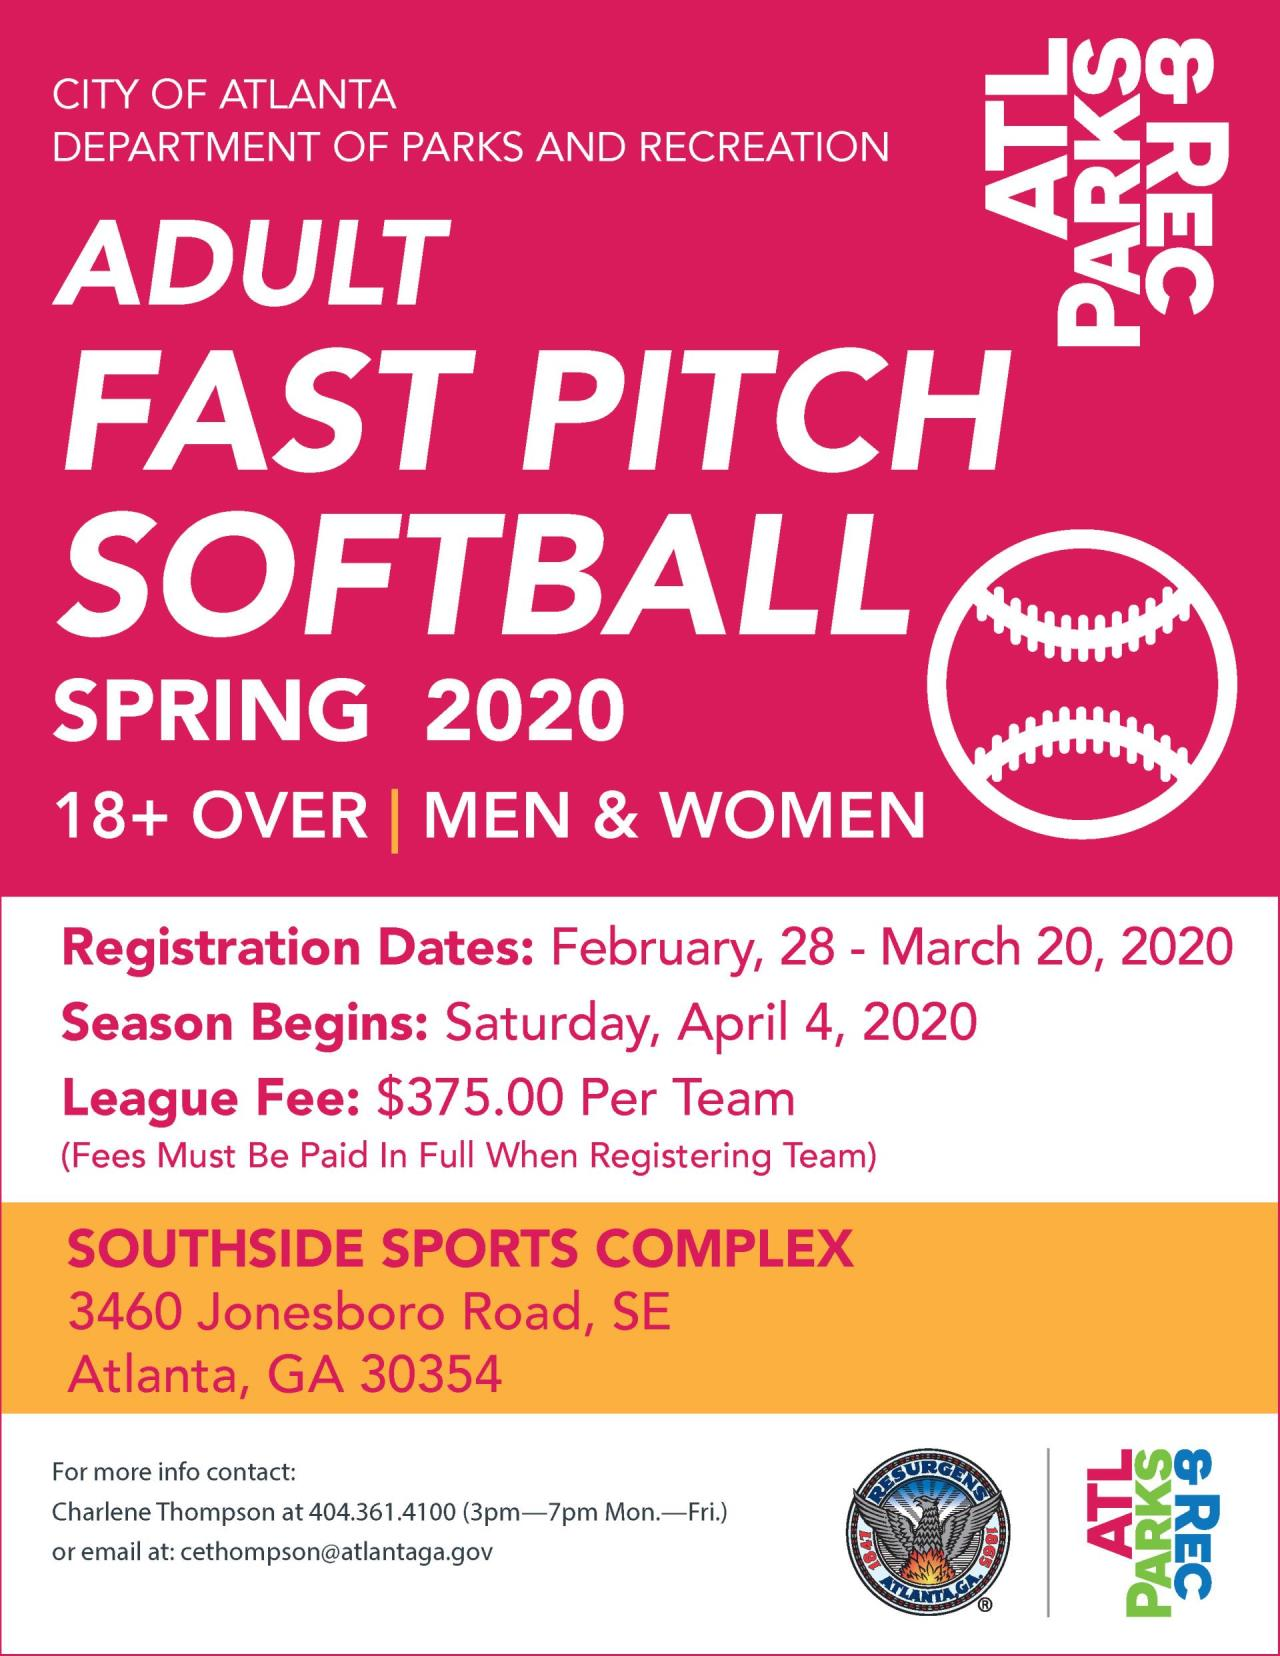 2020 Adult Fast Pitch Softball Flyer